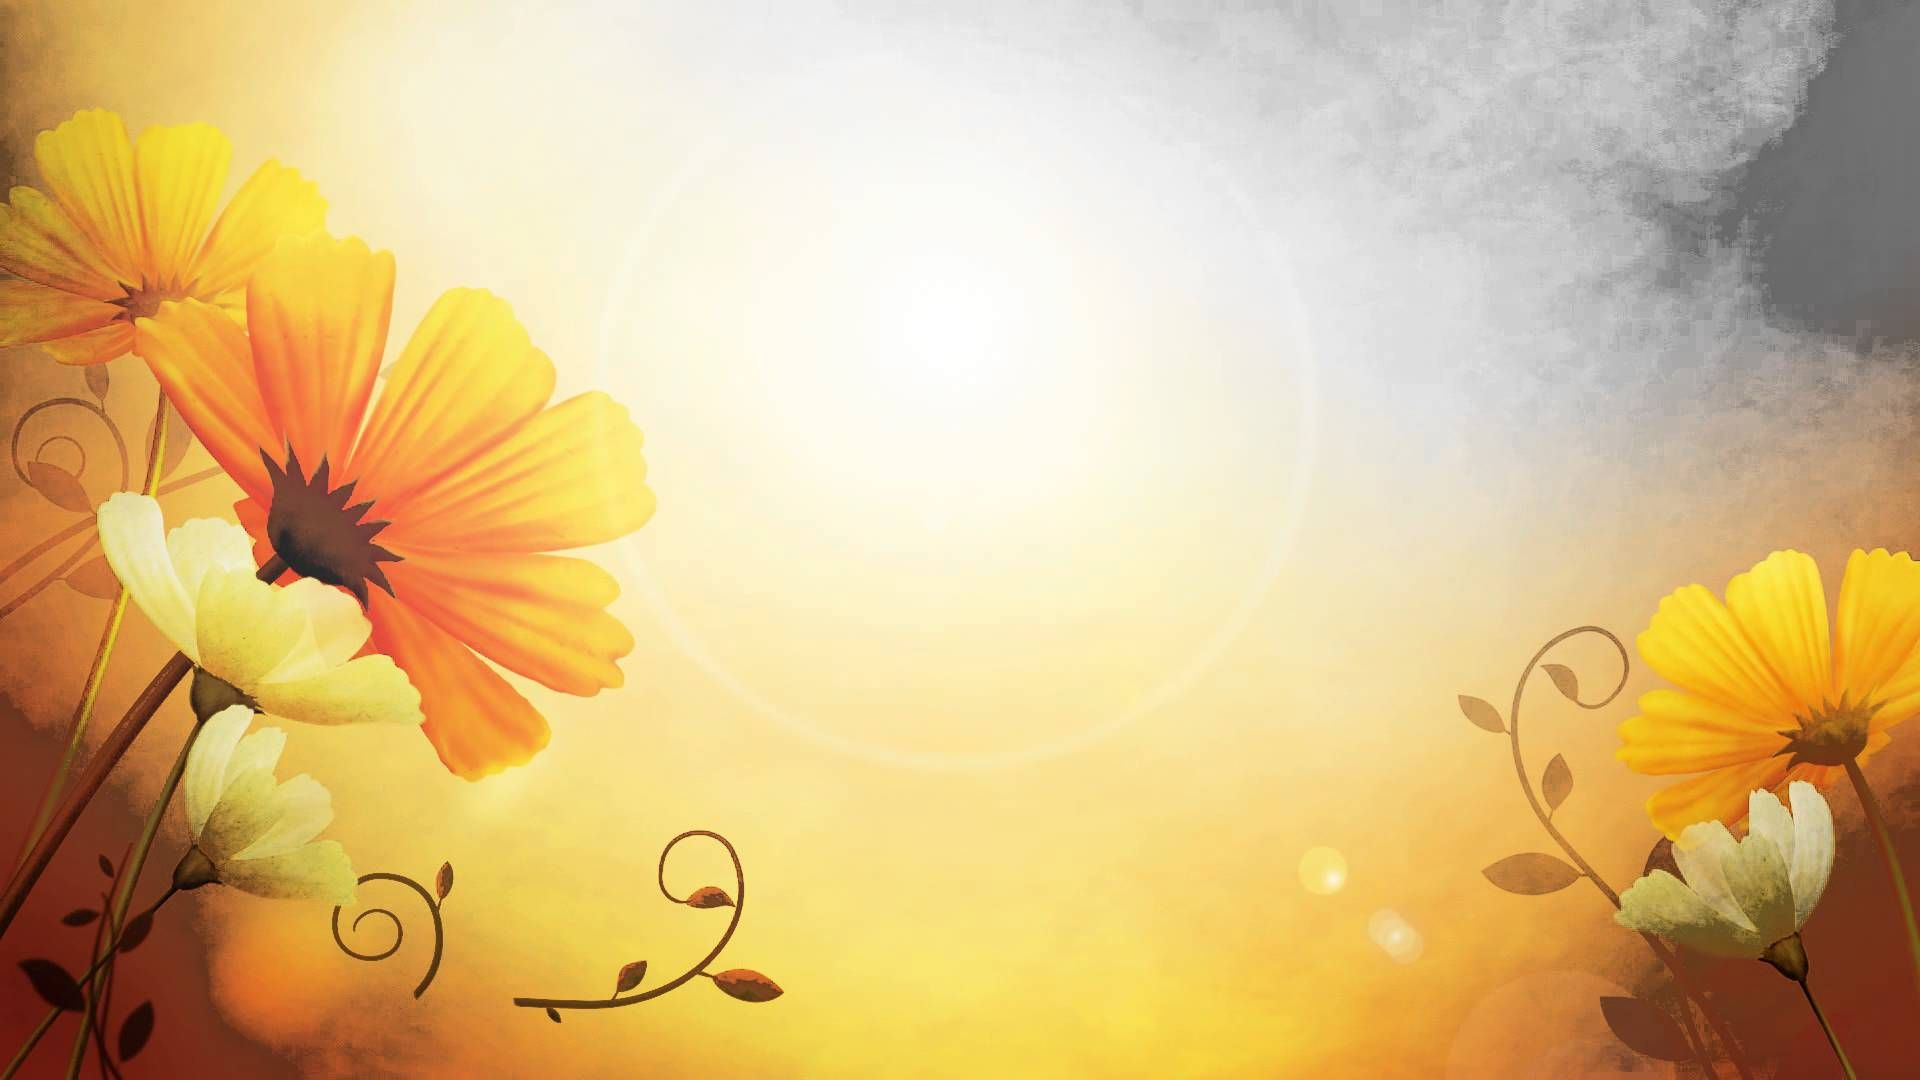 Video Background HD Flower HD Style Proshow